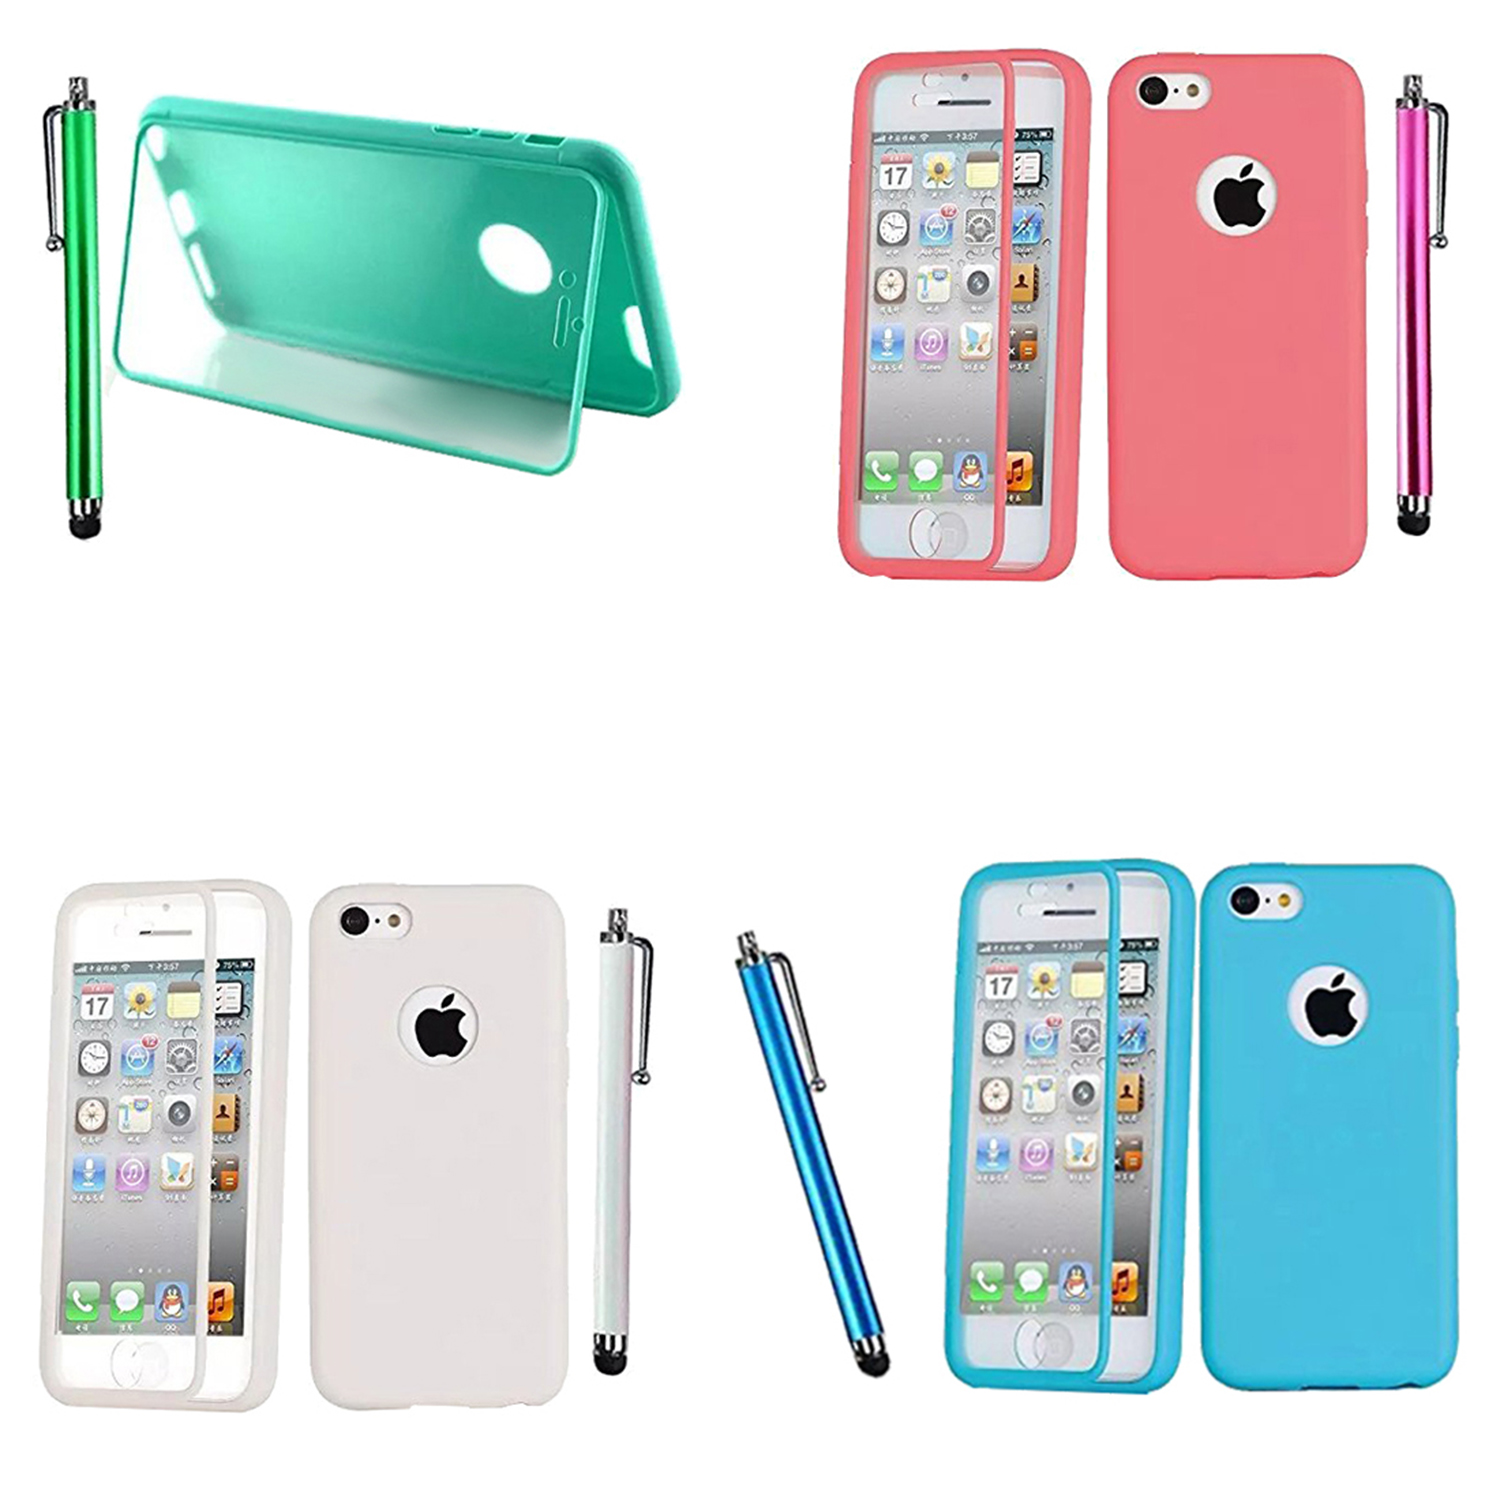 new concept 18285 41533 Details about Clamshell type TPU cell phone case for iPhone 5SE 5S Green +  Stylus Pen L L4Y7)